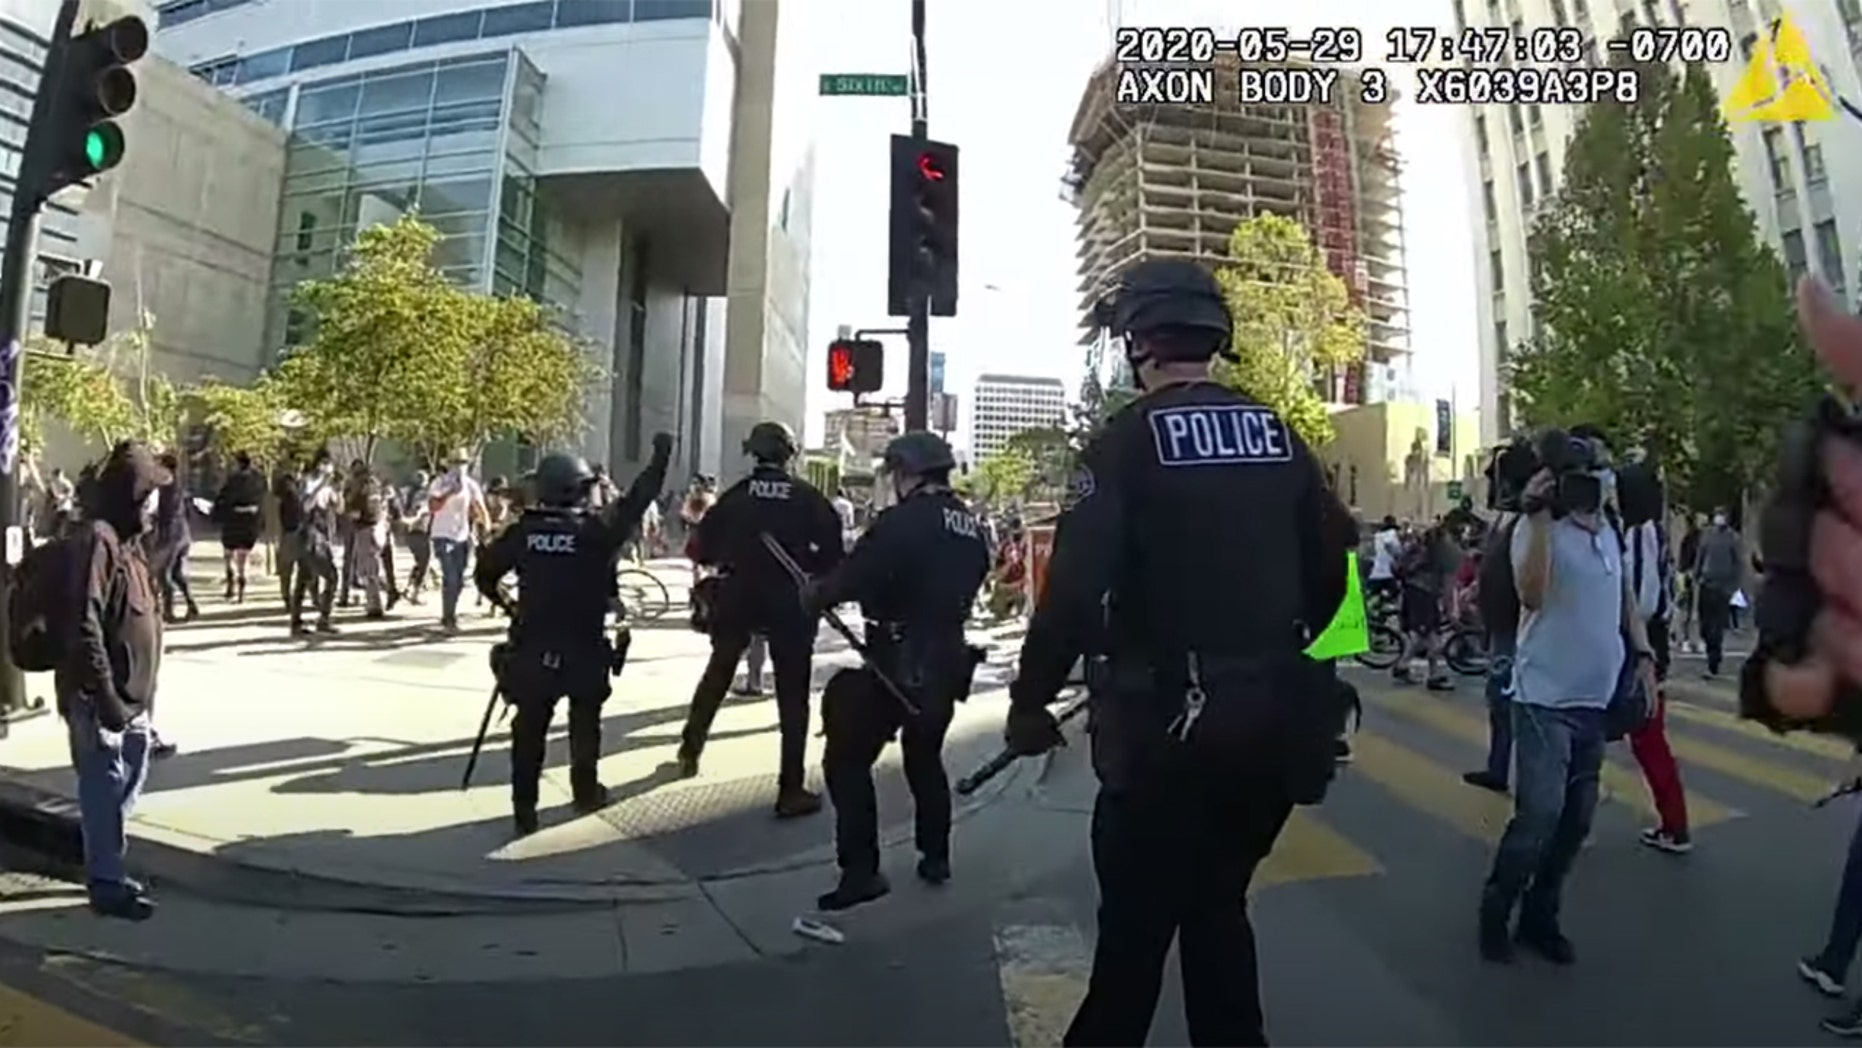 San Jose police released bodycam video Friday shot during George Floyd protests in May.